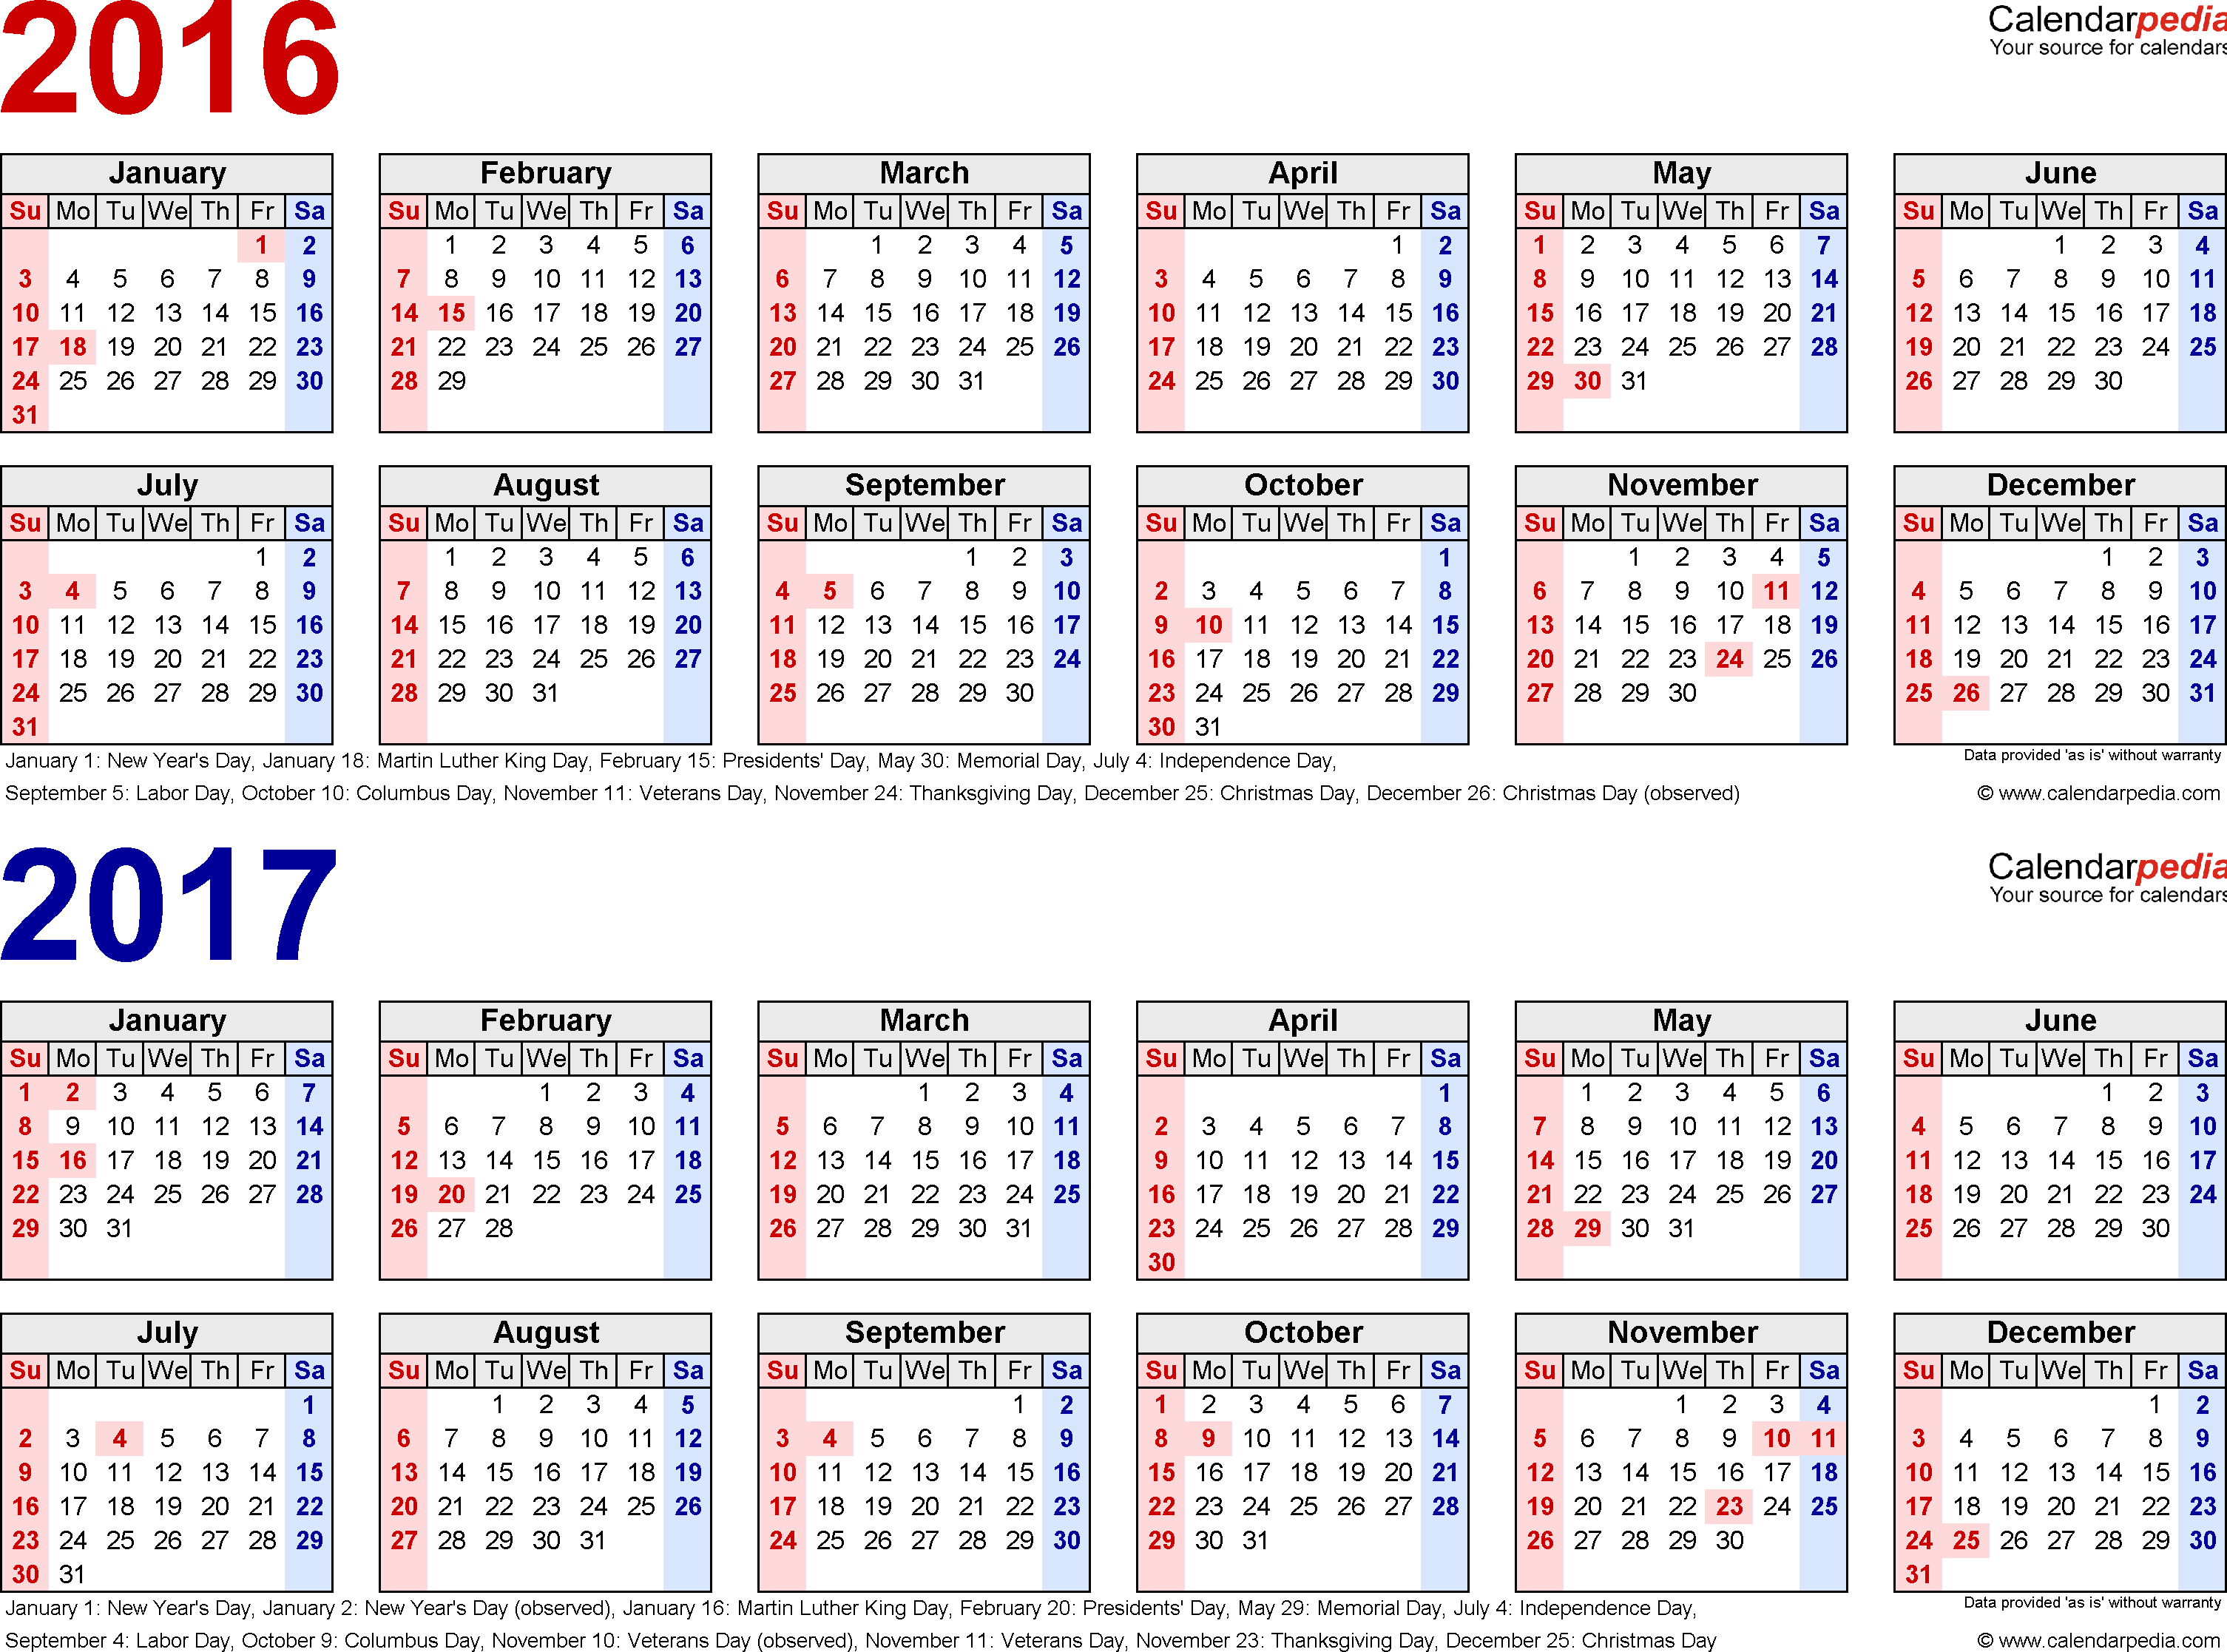 Thursday September 19 Calendar Png Transparent Thursday September 19